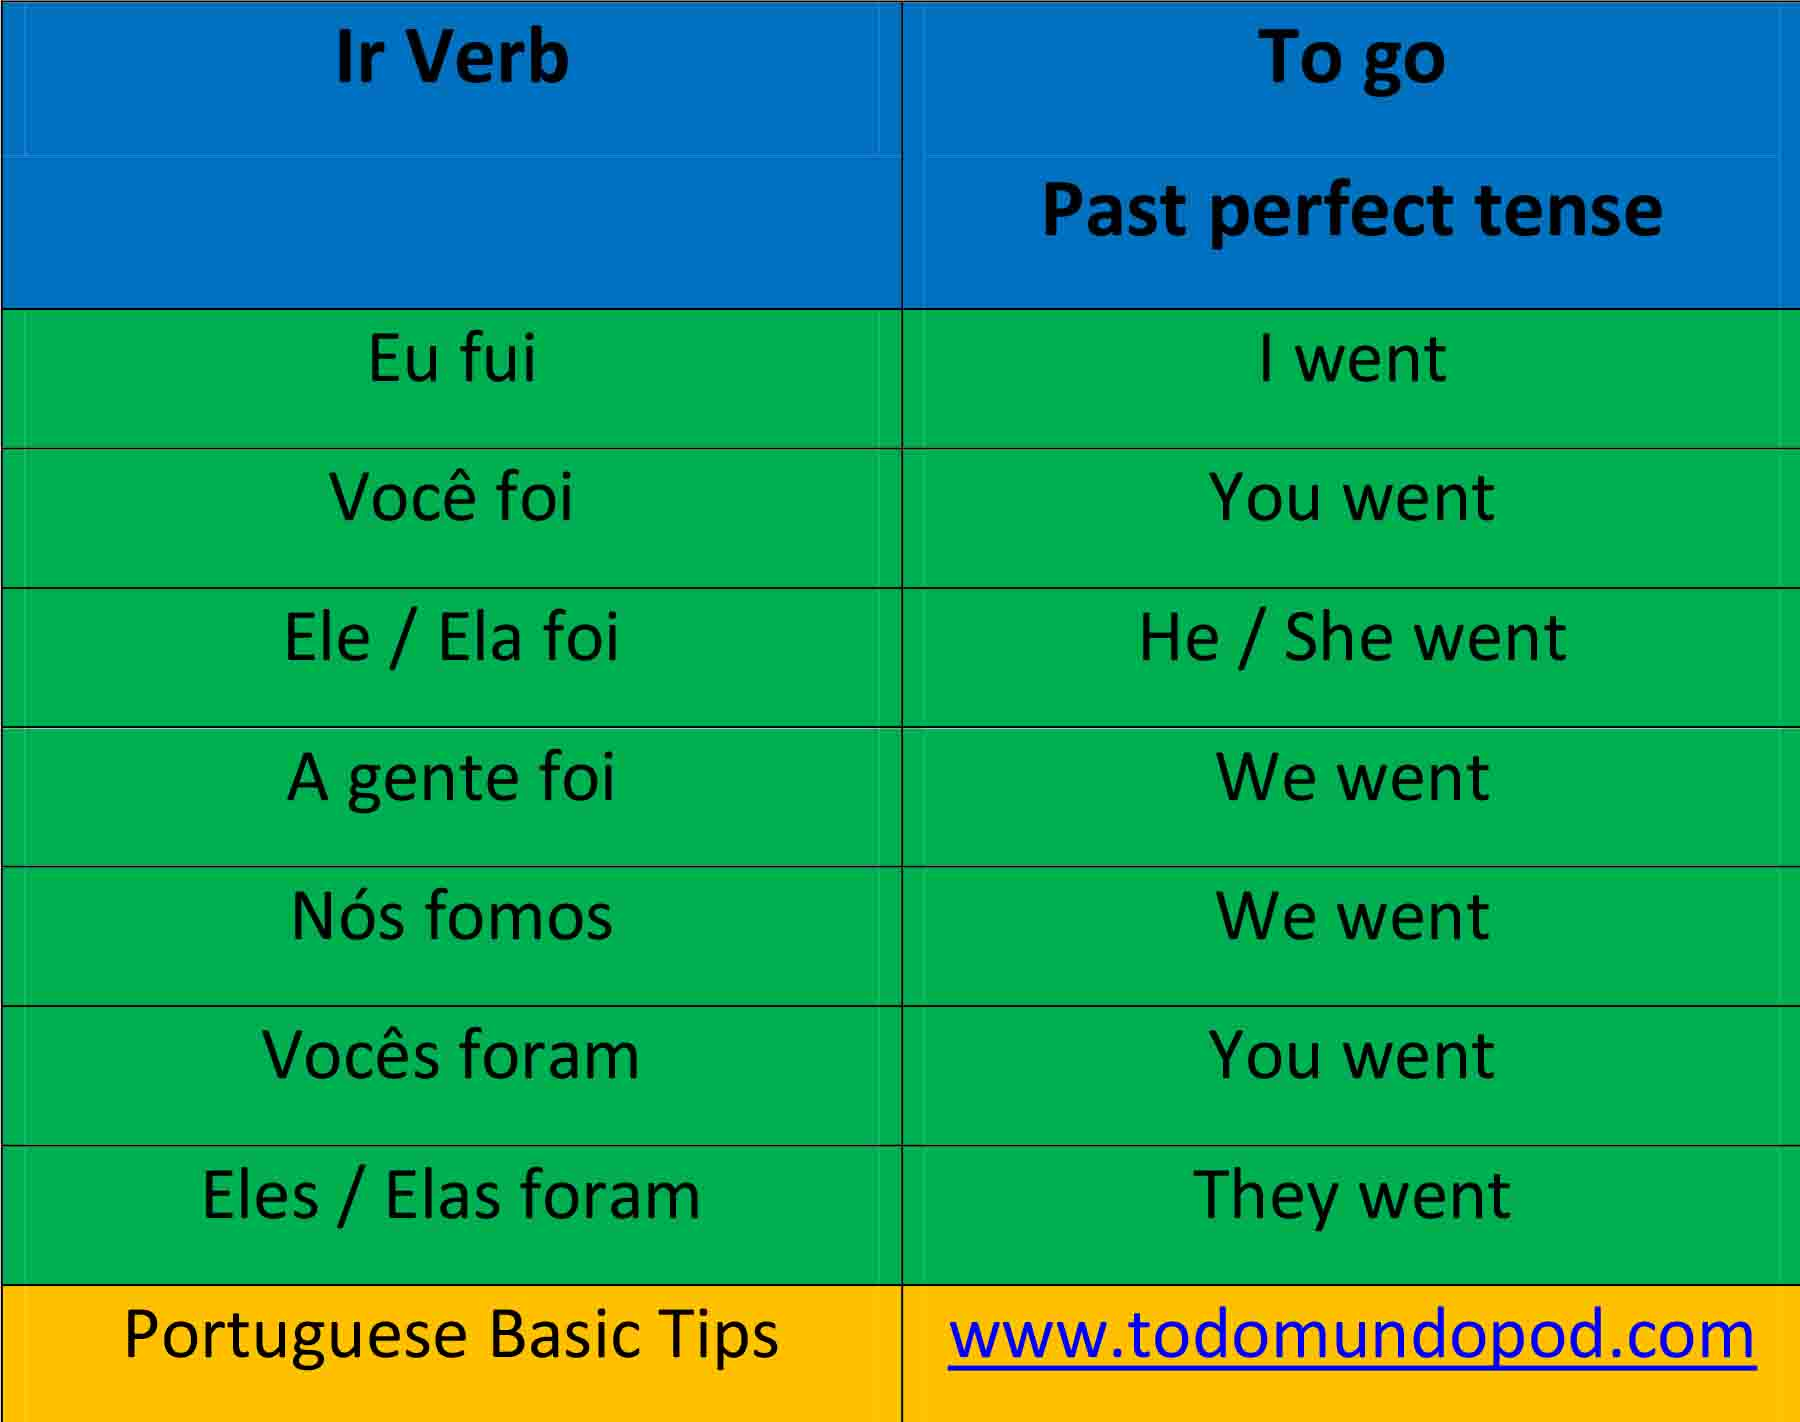 Ir conjugation past perfect tense